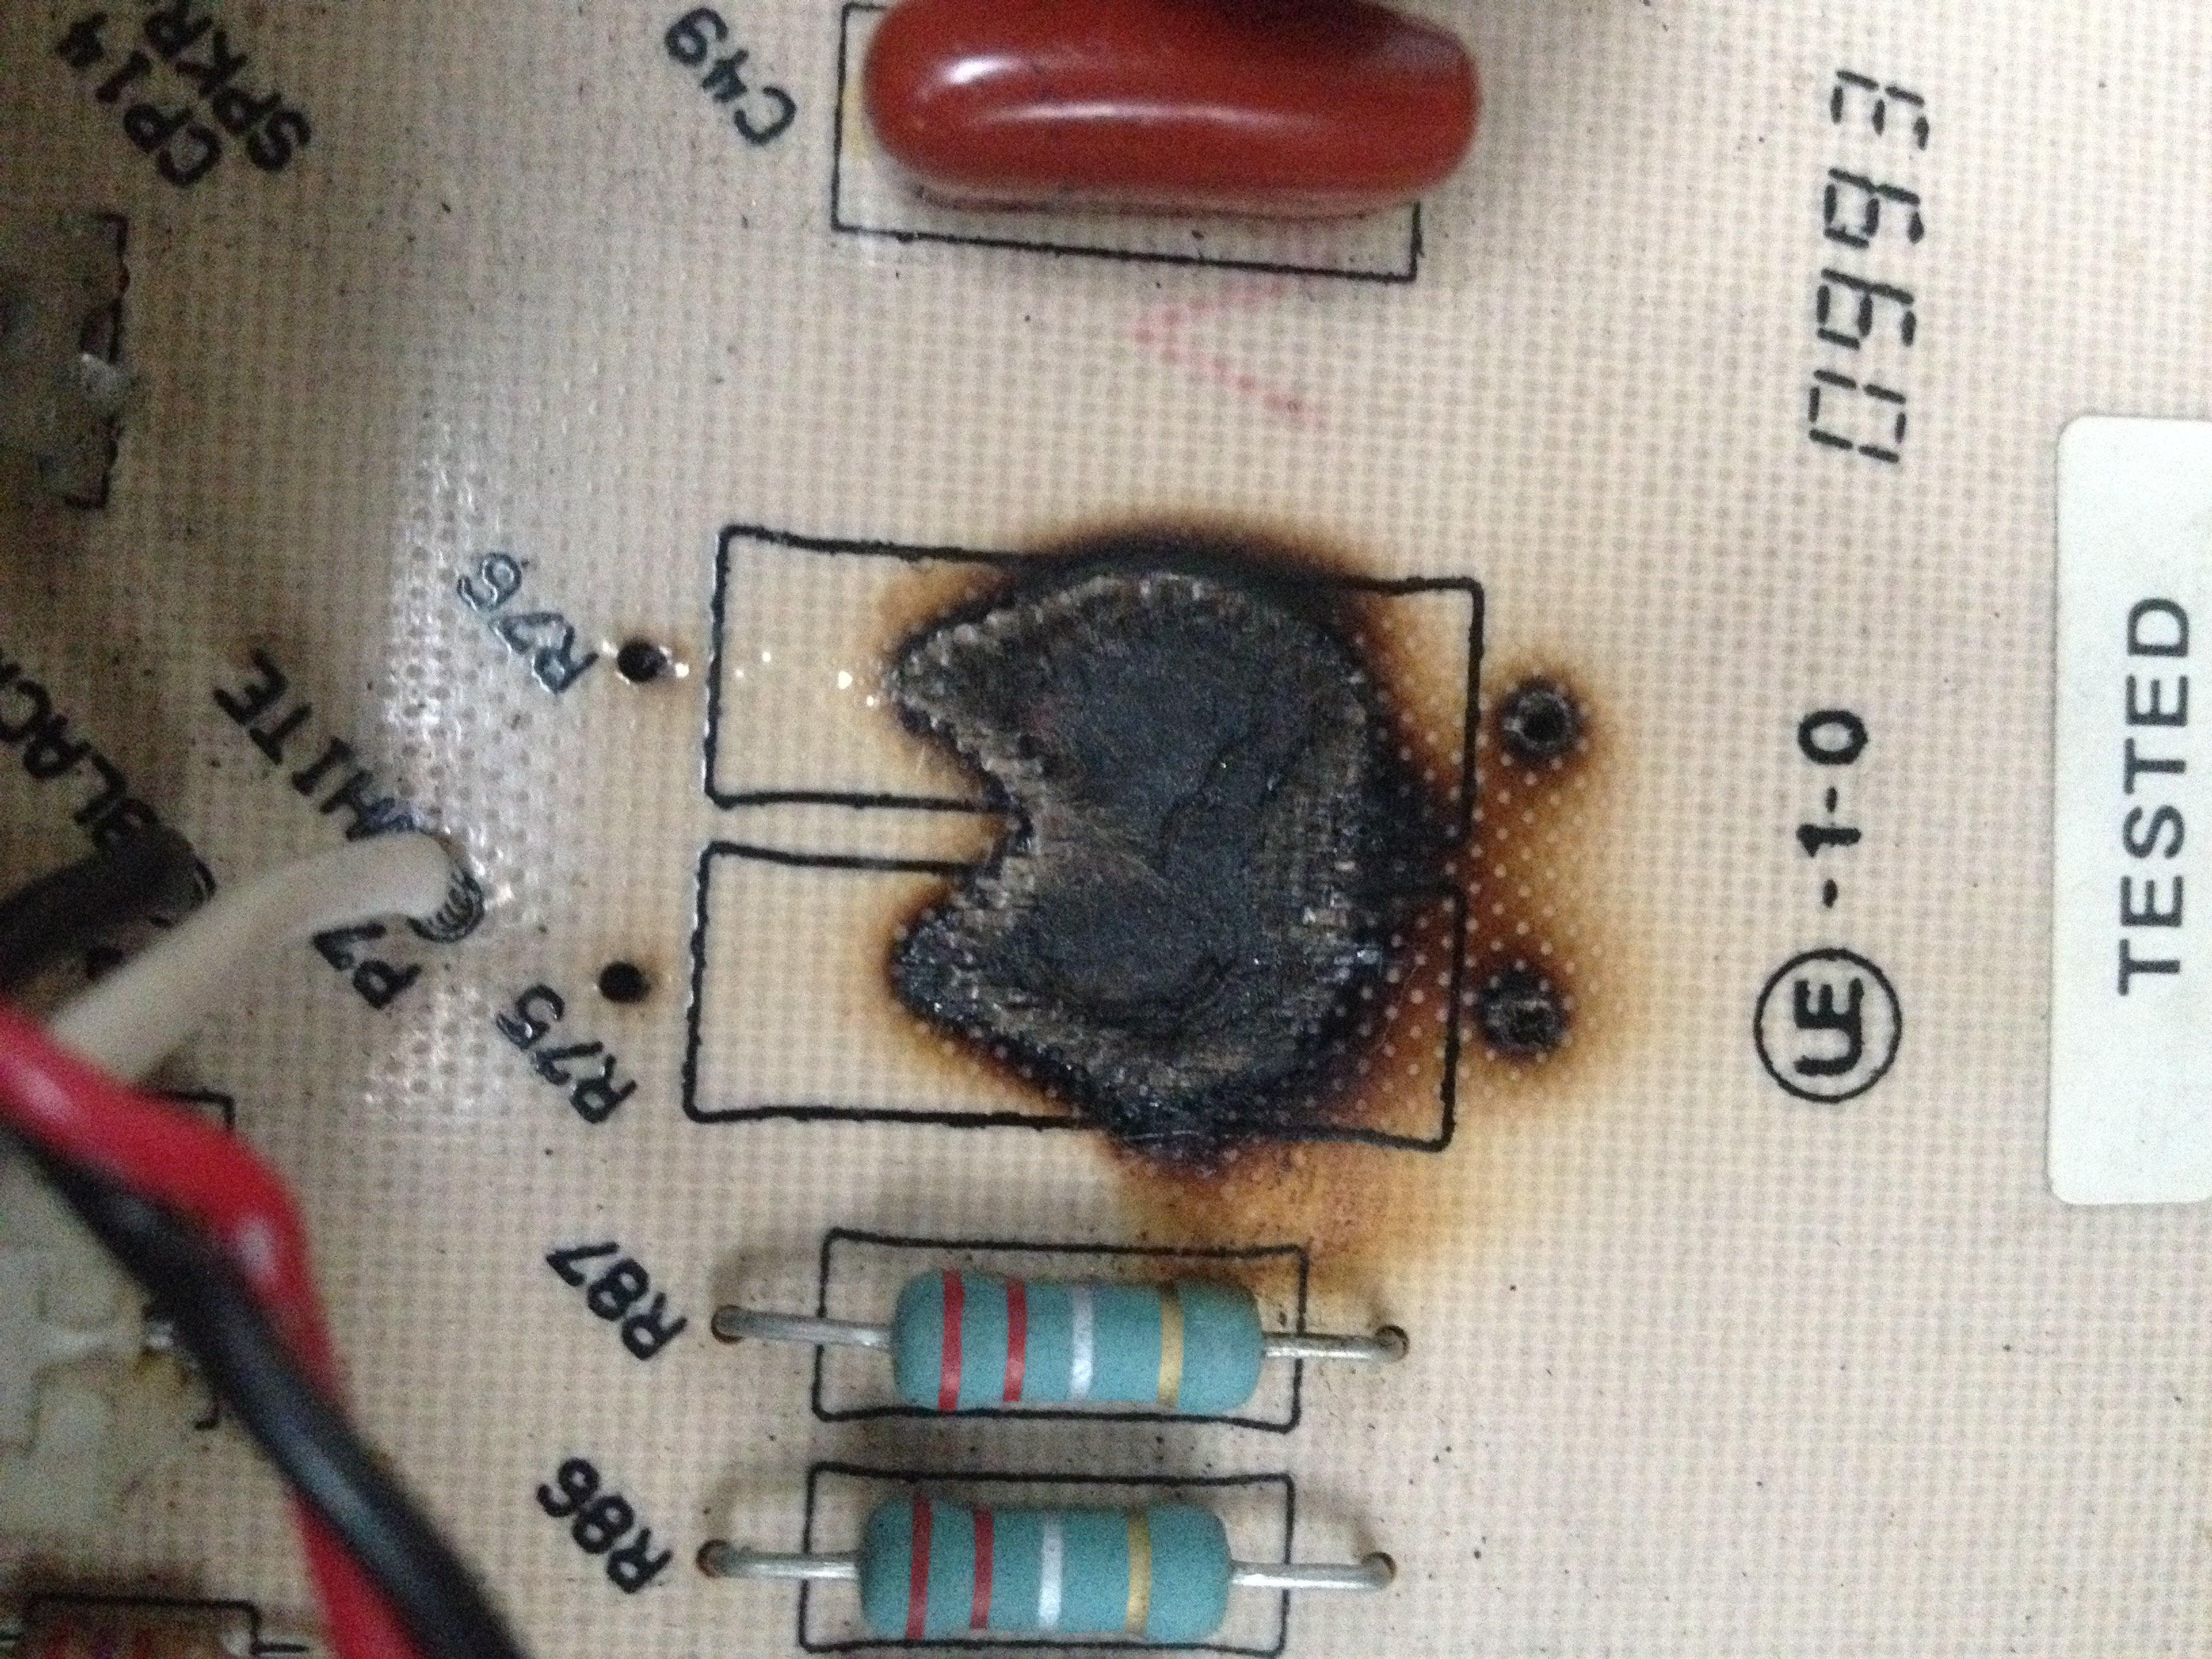 Fender Stage 112 repair - how to tackle burnt PCB on